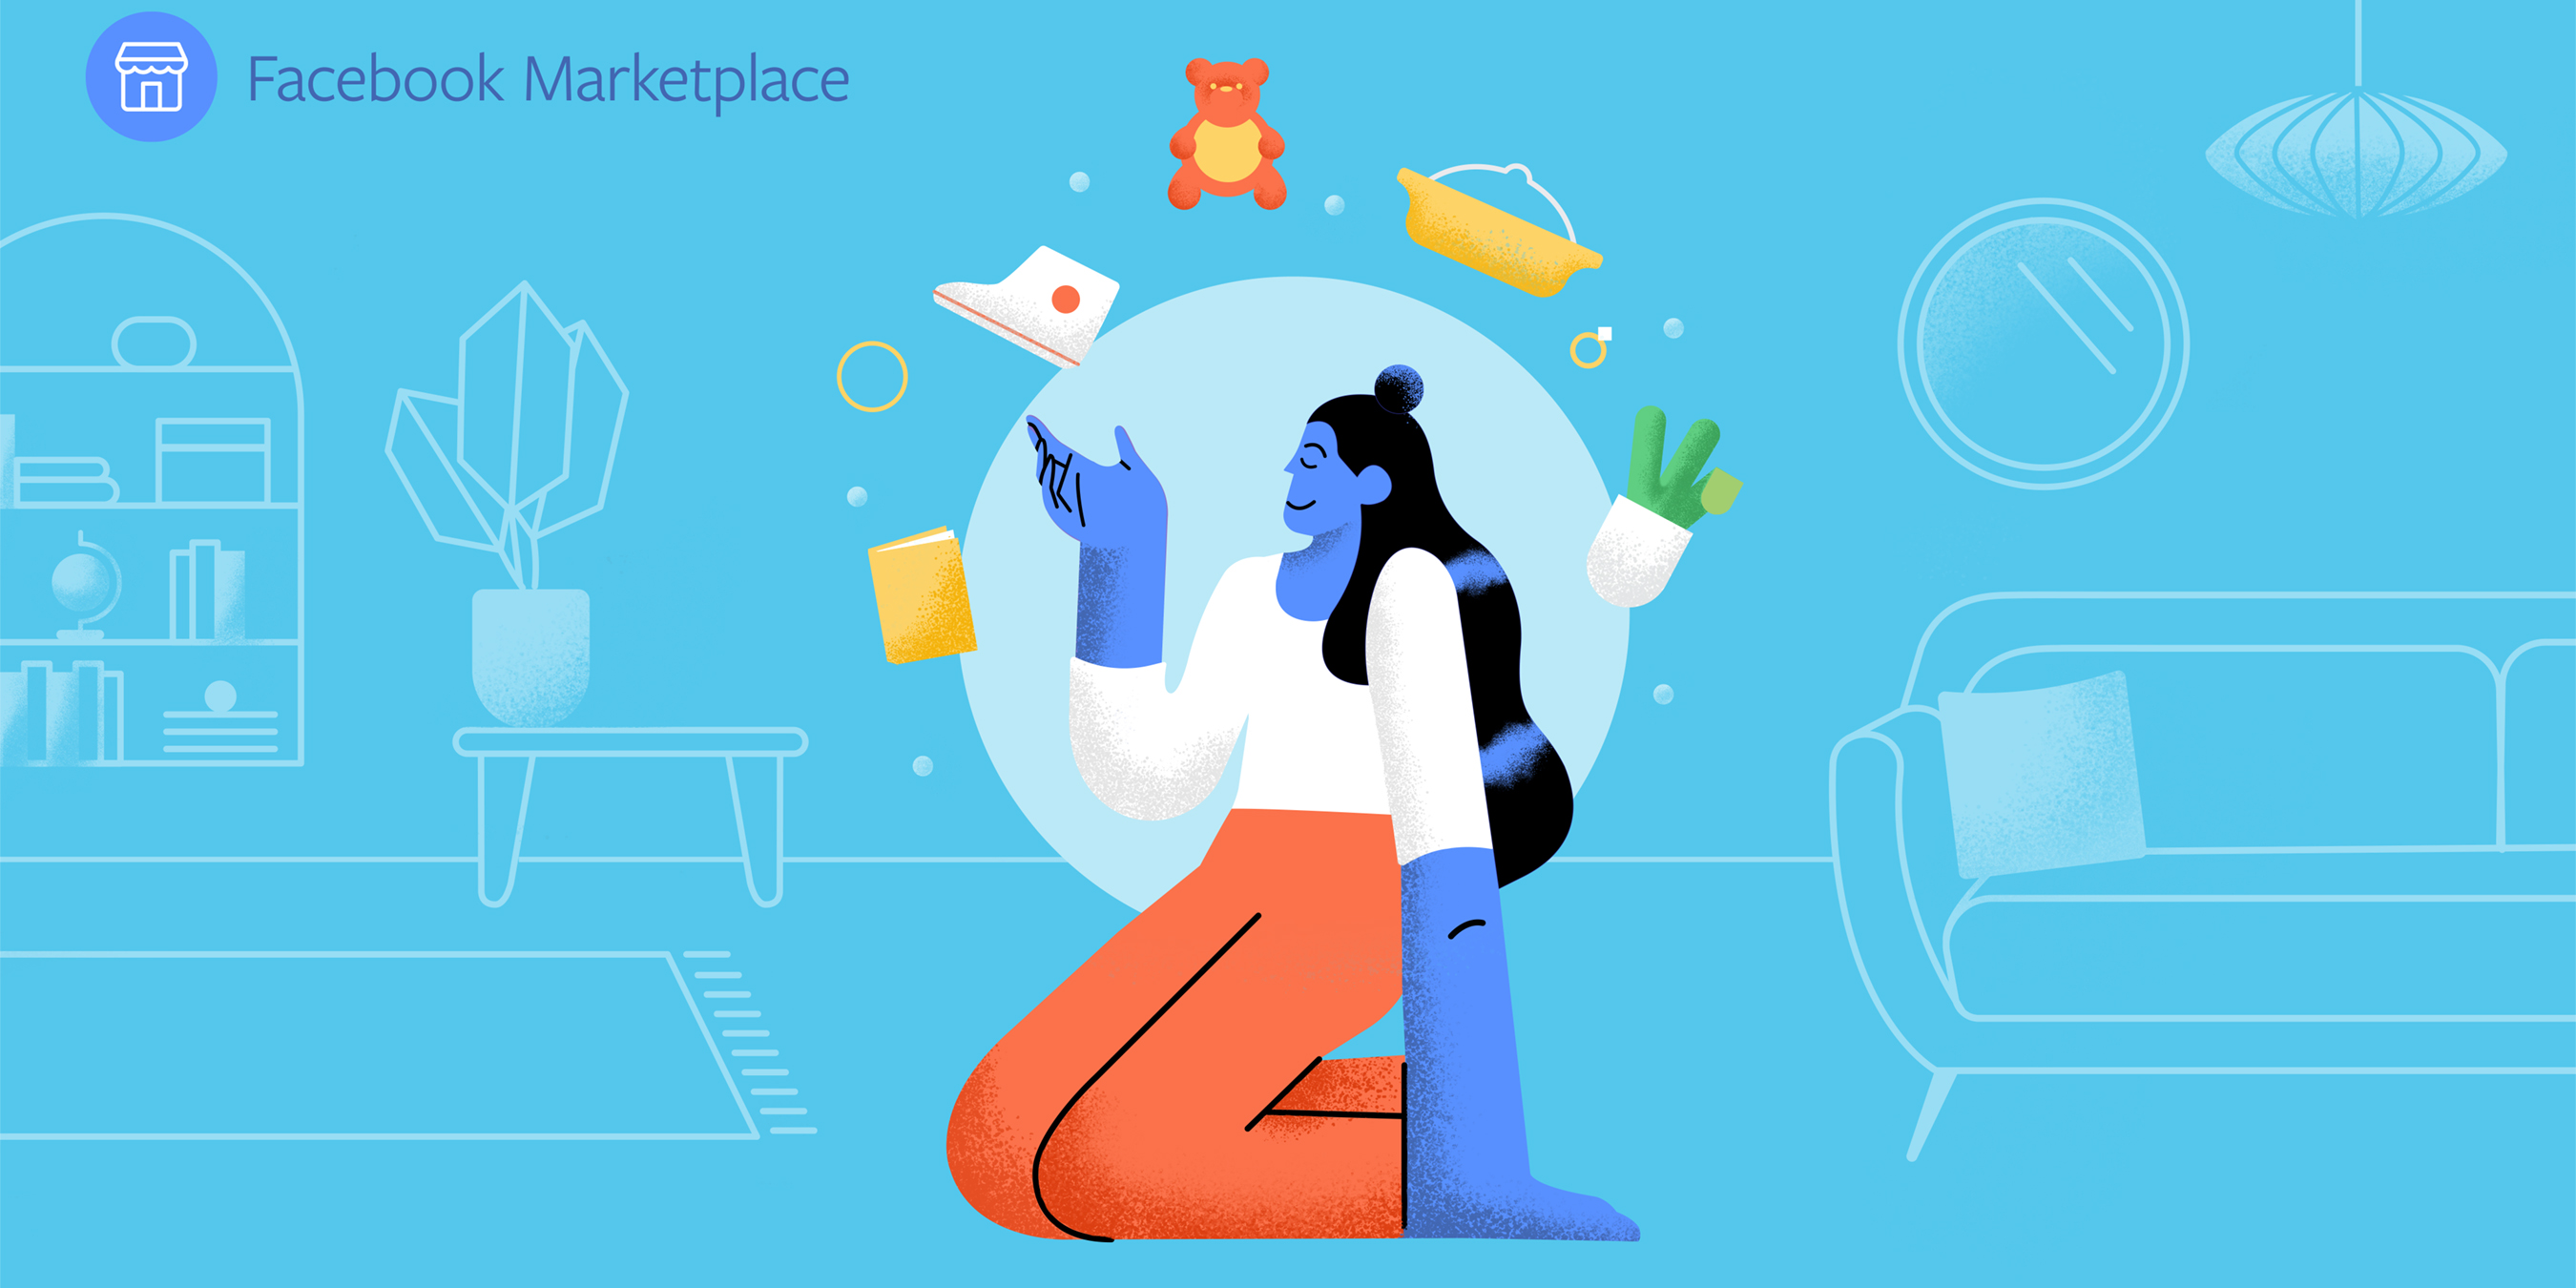 Graphic of woman sitting down with marketplace items